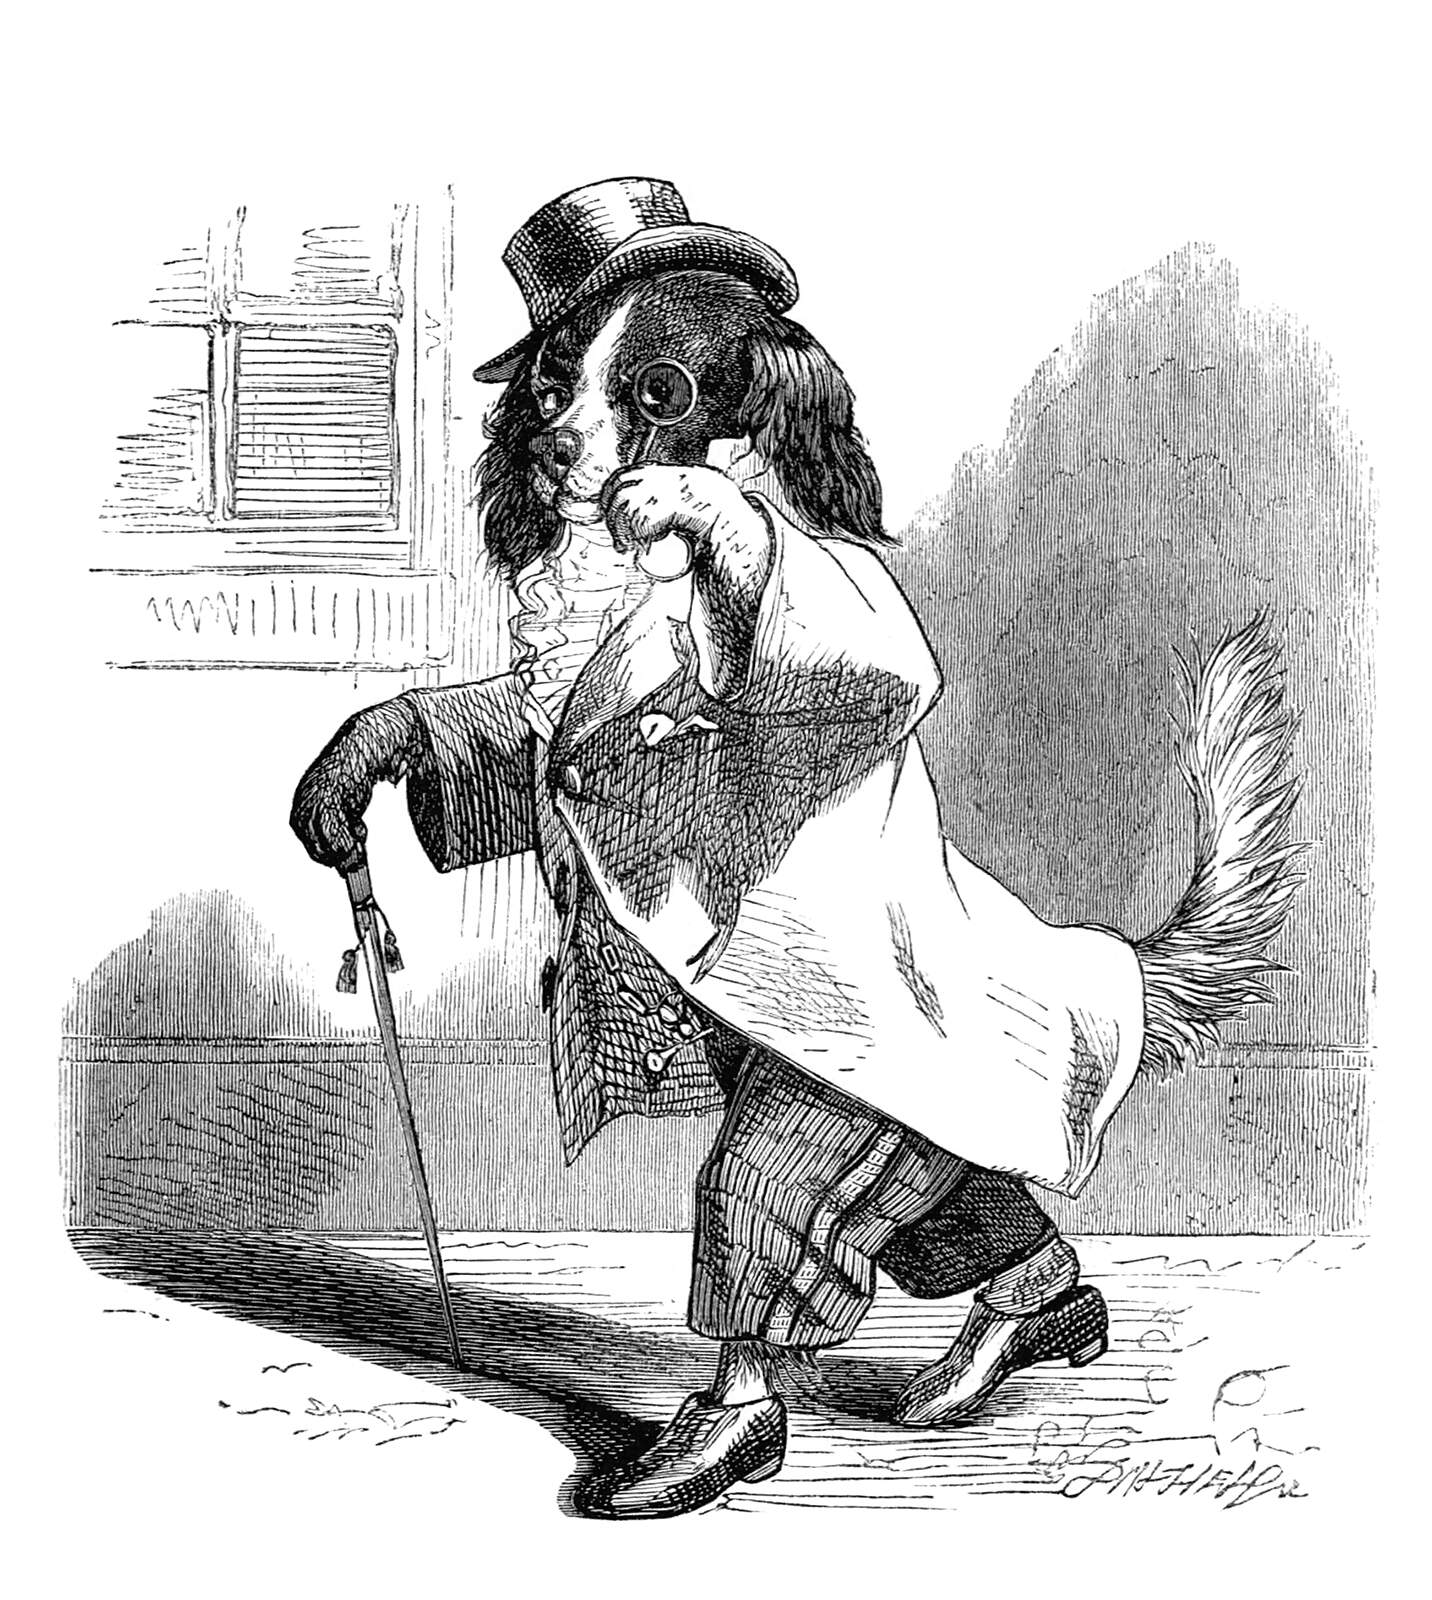 A dog walks down a street with a monocle